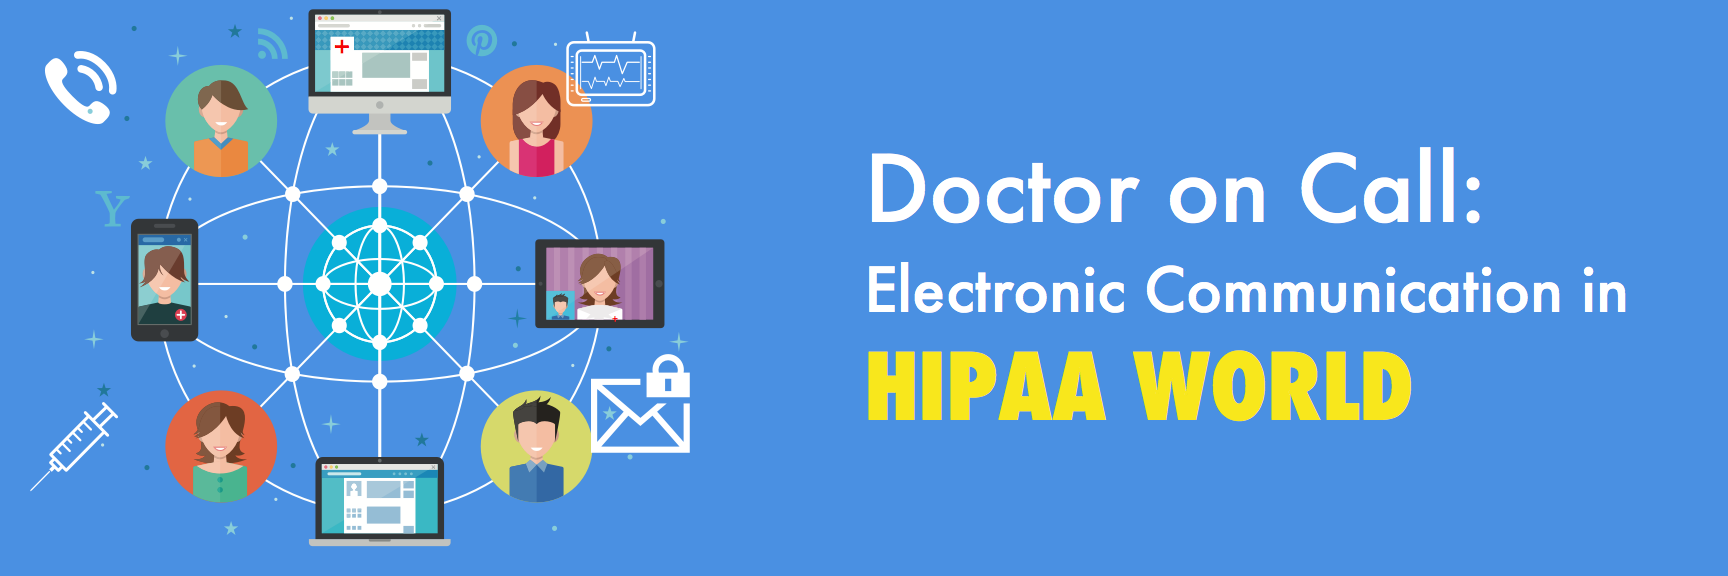 doctoron call electronic communication in HIPAA world